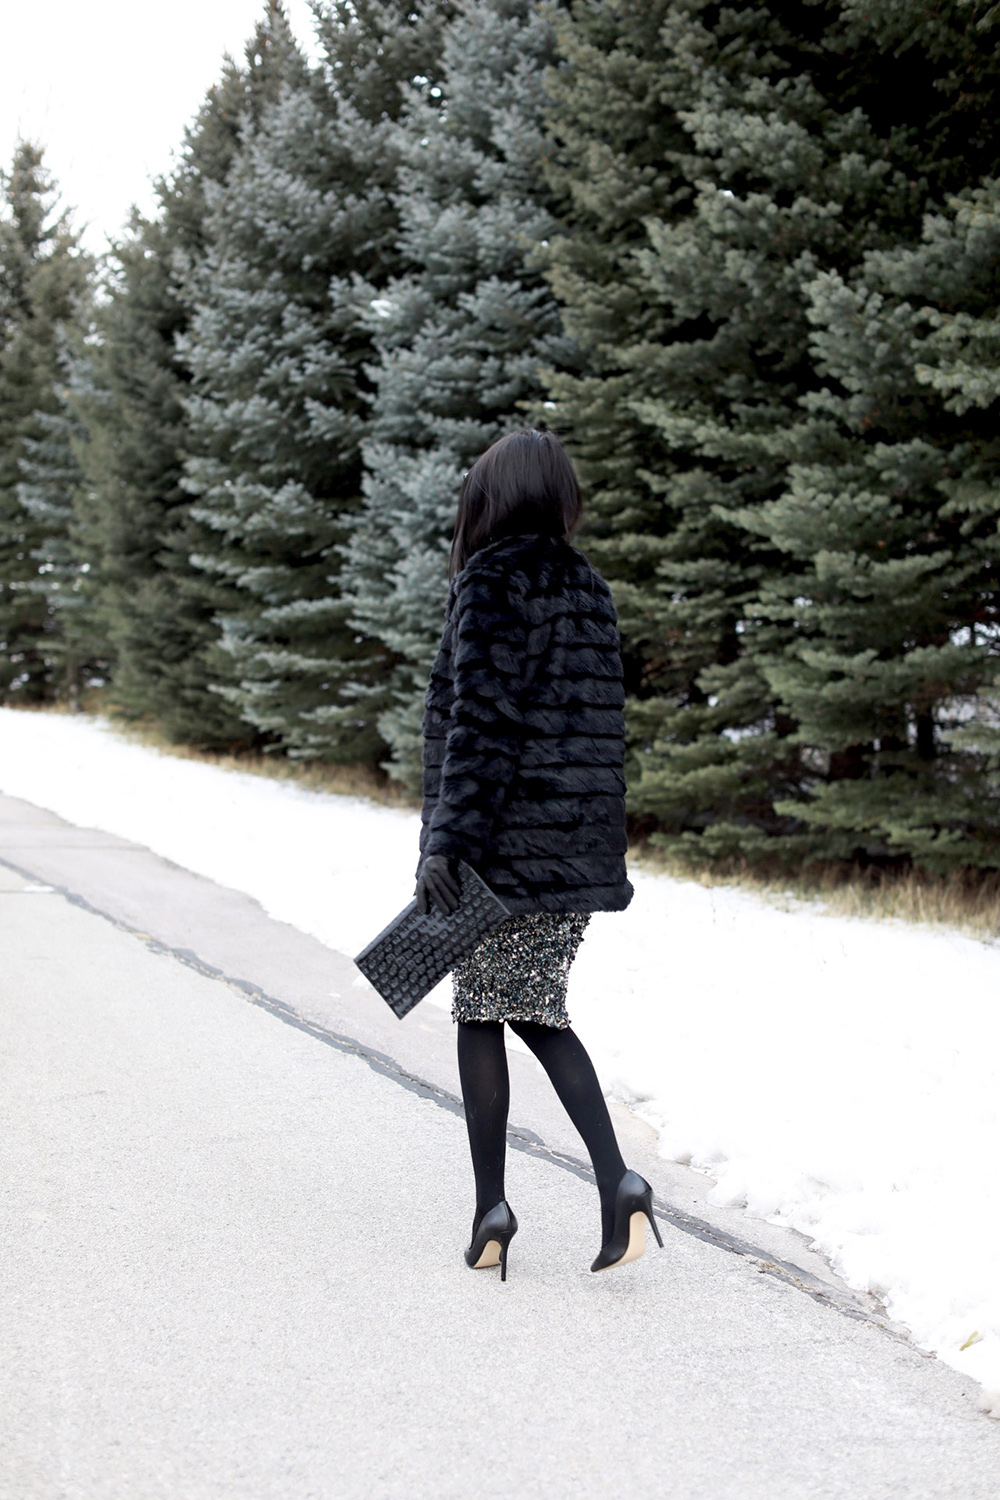 Turtleneck: Neiman Marcus | Skirt: Haute Hippie | Coat: John & Jenn | Tights: Neiman Marcus | Pumps:Neiman Marcus | Clutch: St. John | Watch: Burberry | Cuff: Panacea | Sunglasses: Karen Walker (similar style here) | Gloves: old, similar style here (all ℅ Last Call